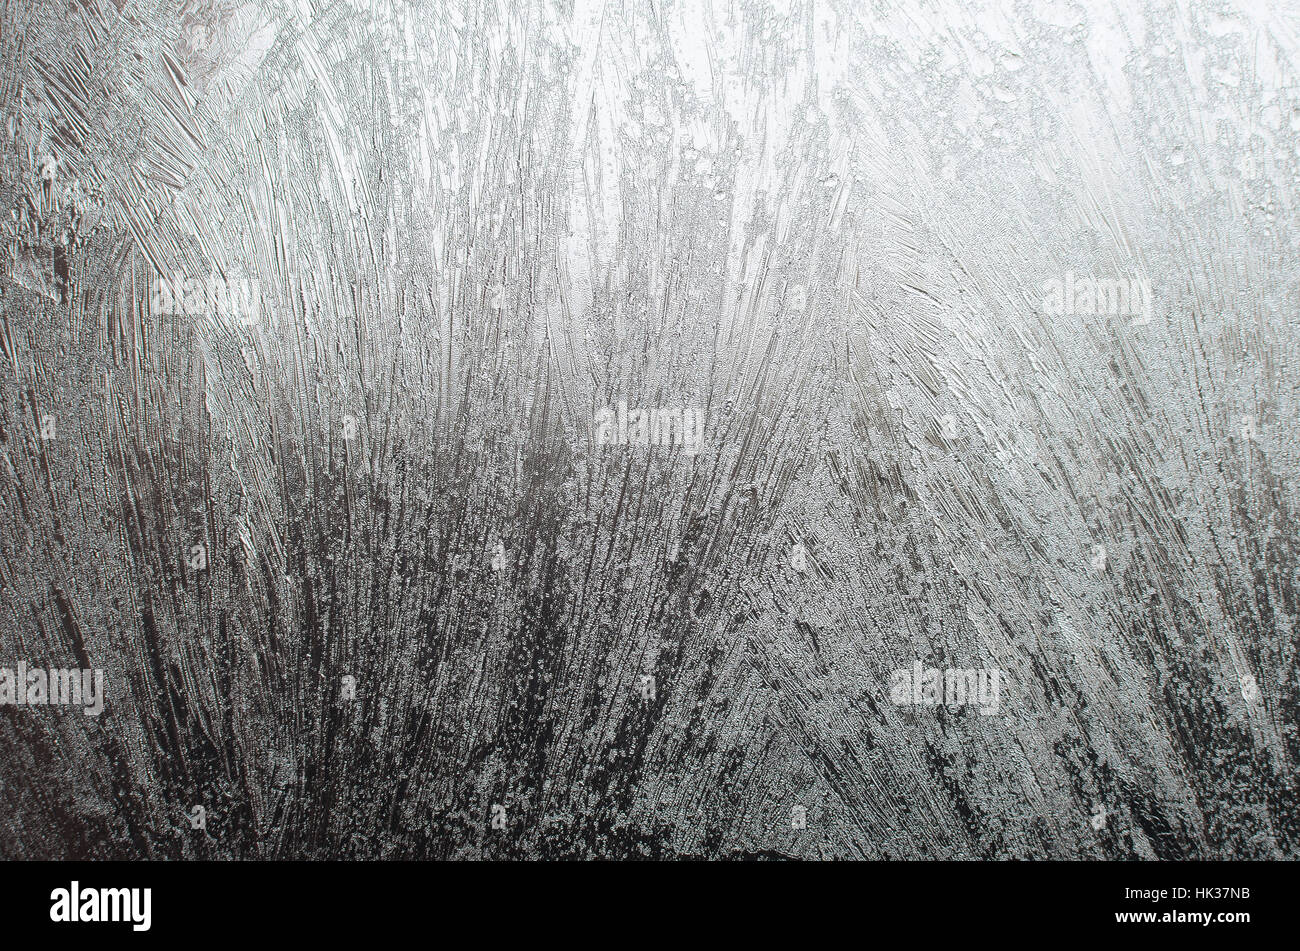 Surface of a window glass with frostwork as a background - Stock Image